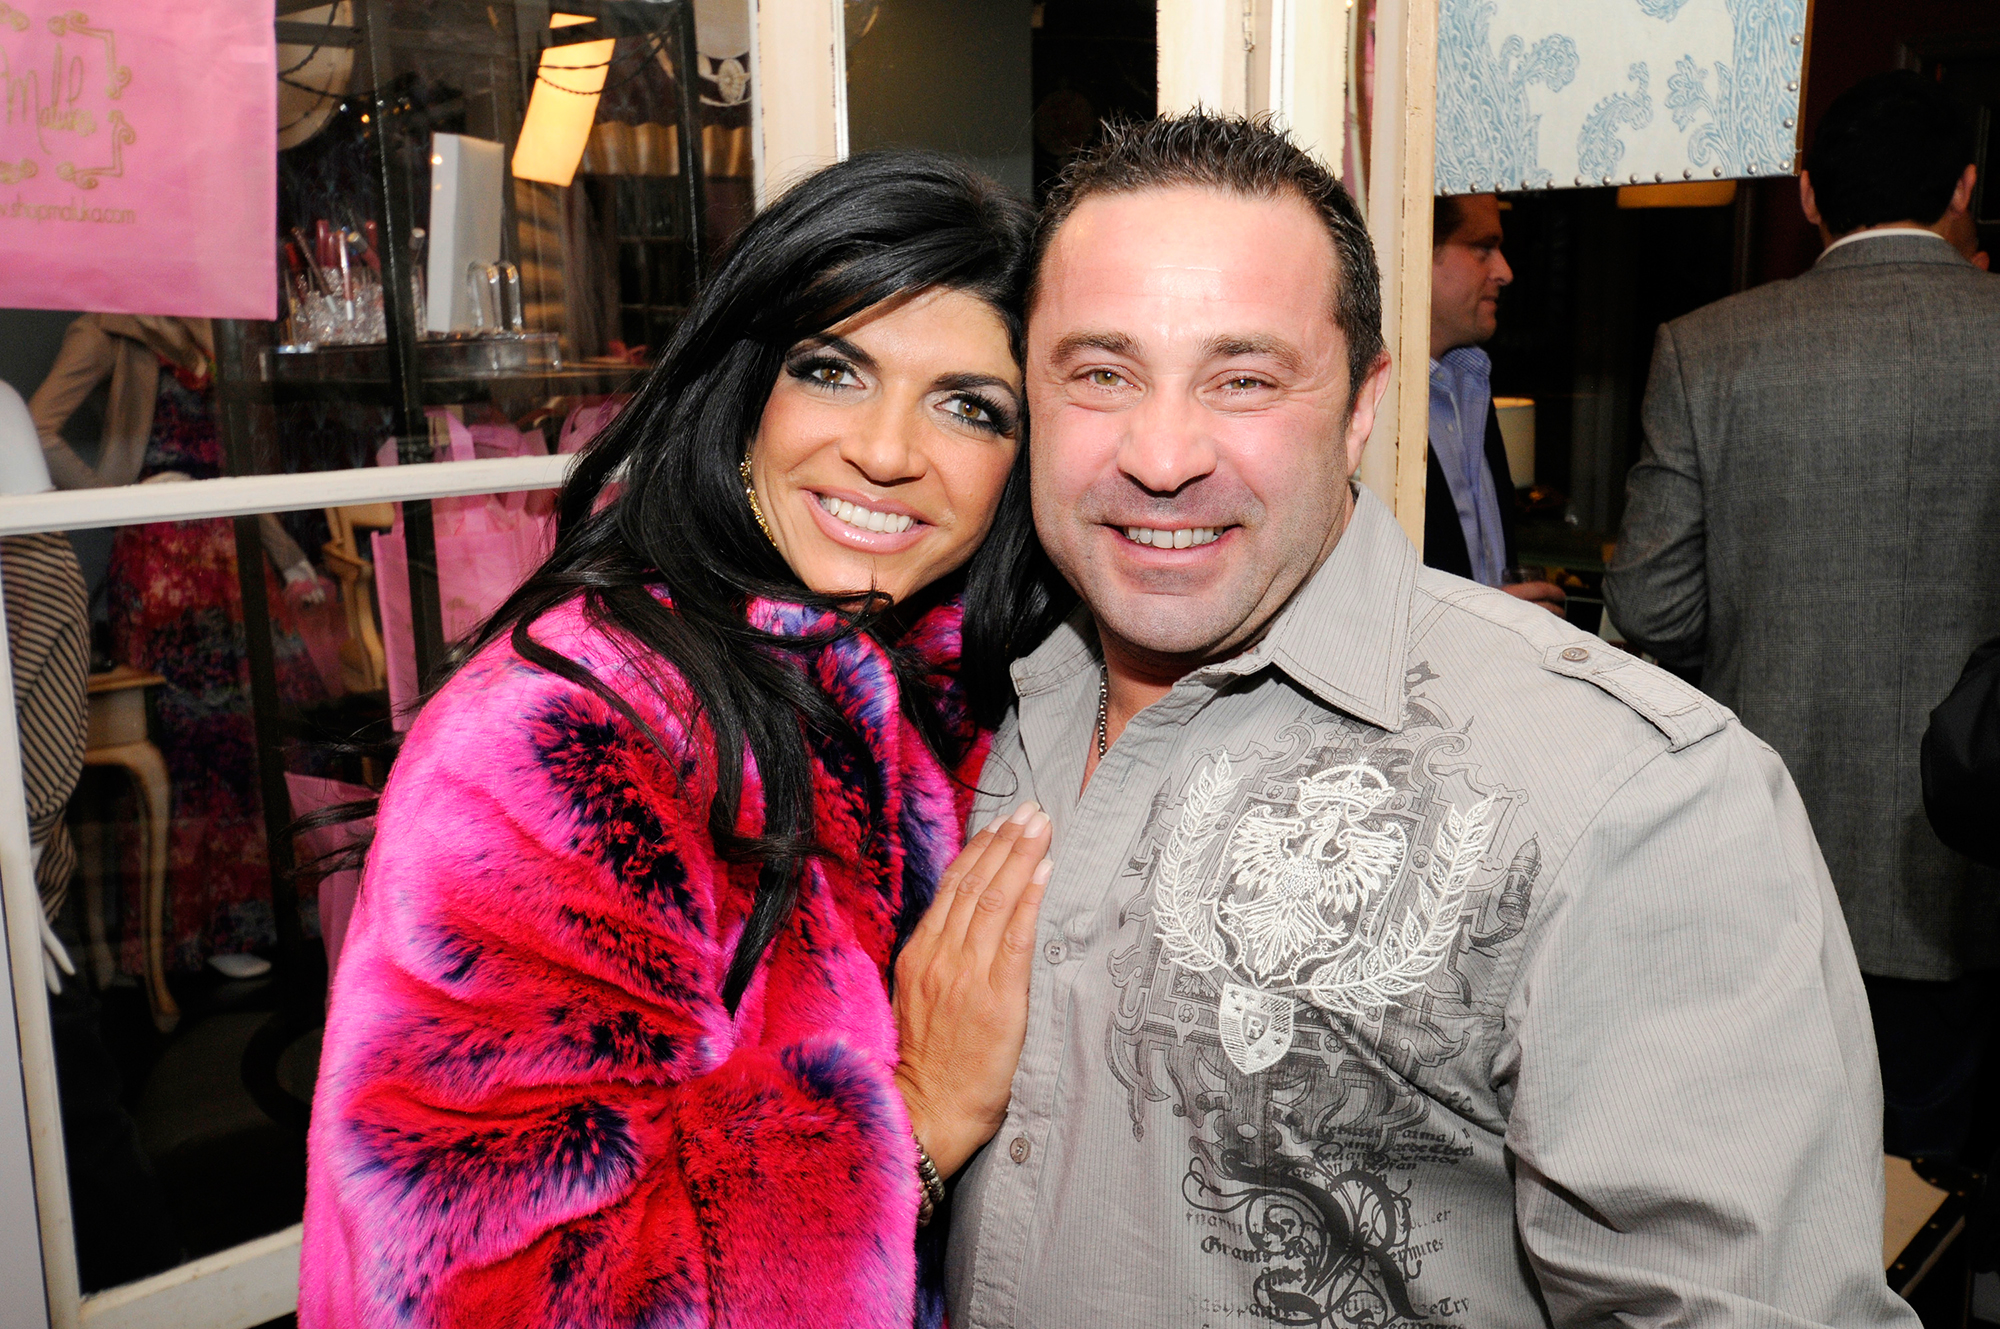 teresa-giudice-determined-to-take-daughters-to-visit-their-dad-on-fathers-day-shell-do-everything-in-her-power